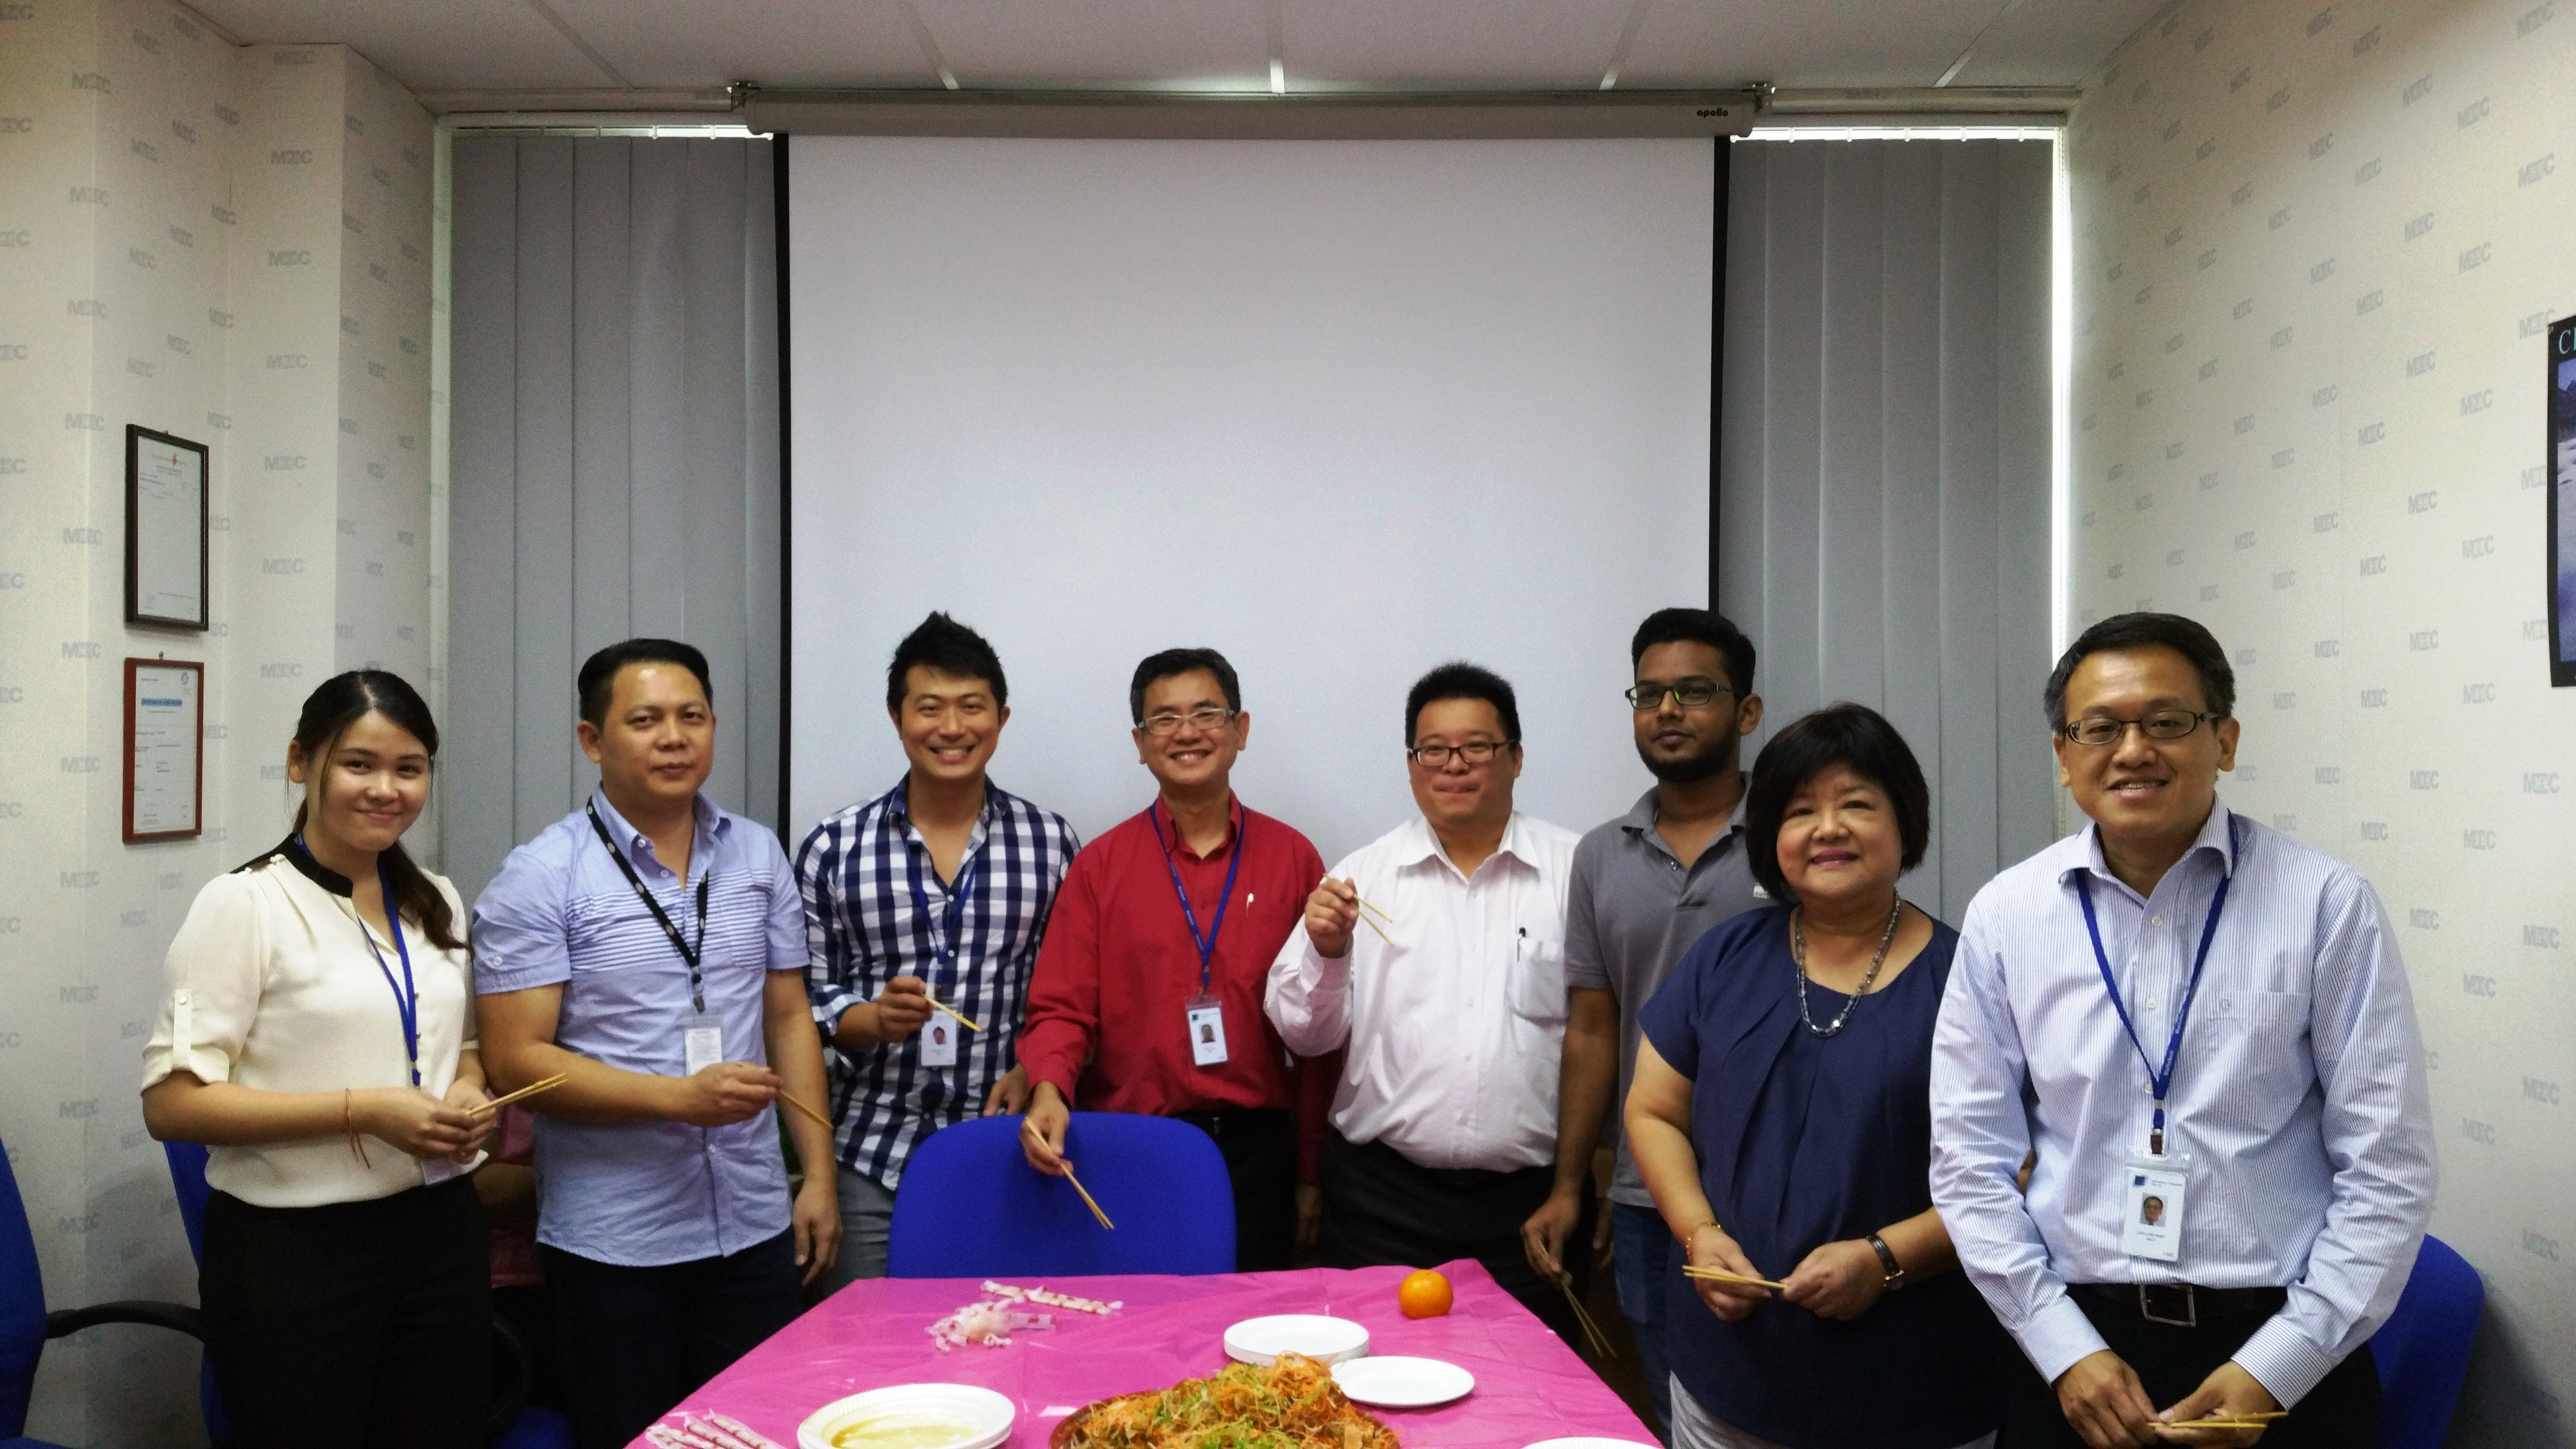 LOHEI LUNCH AND MEDICAL SCREENING – 19 FEBRUARY 2016